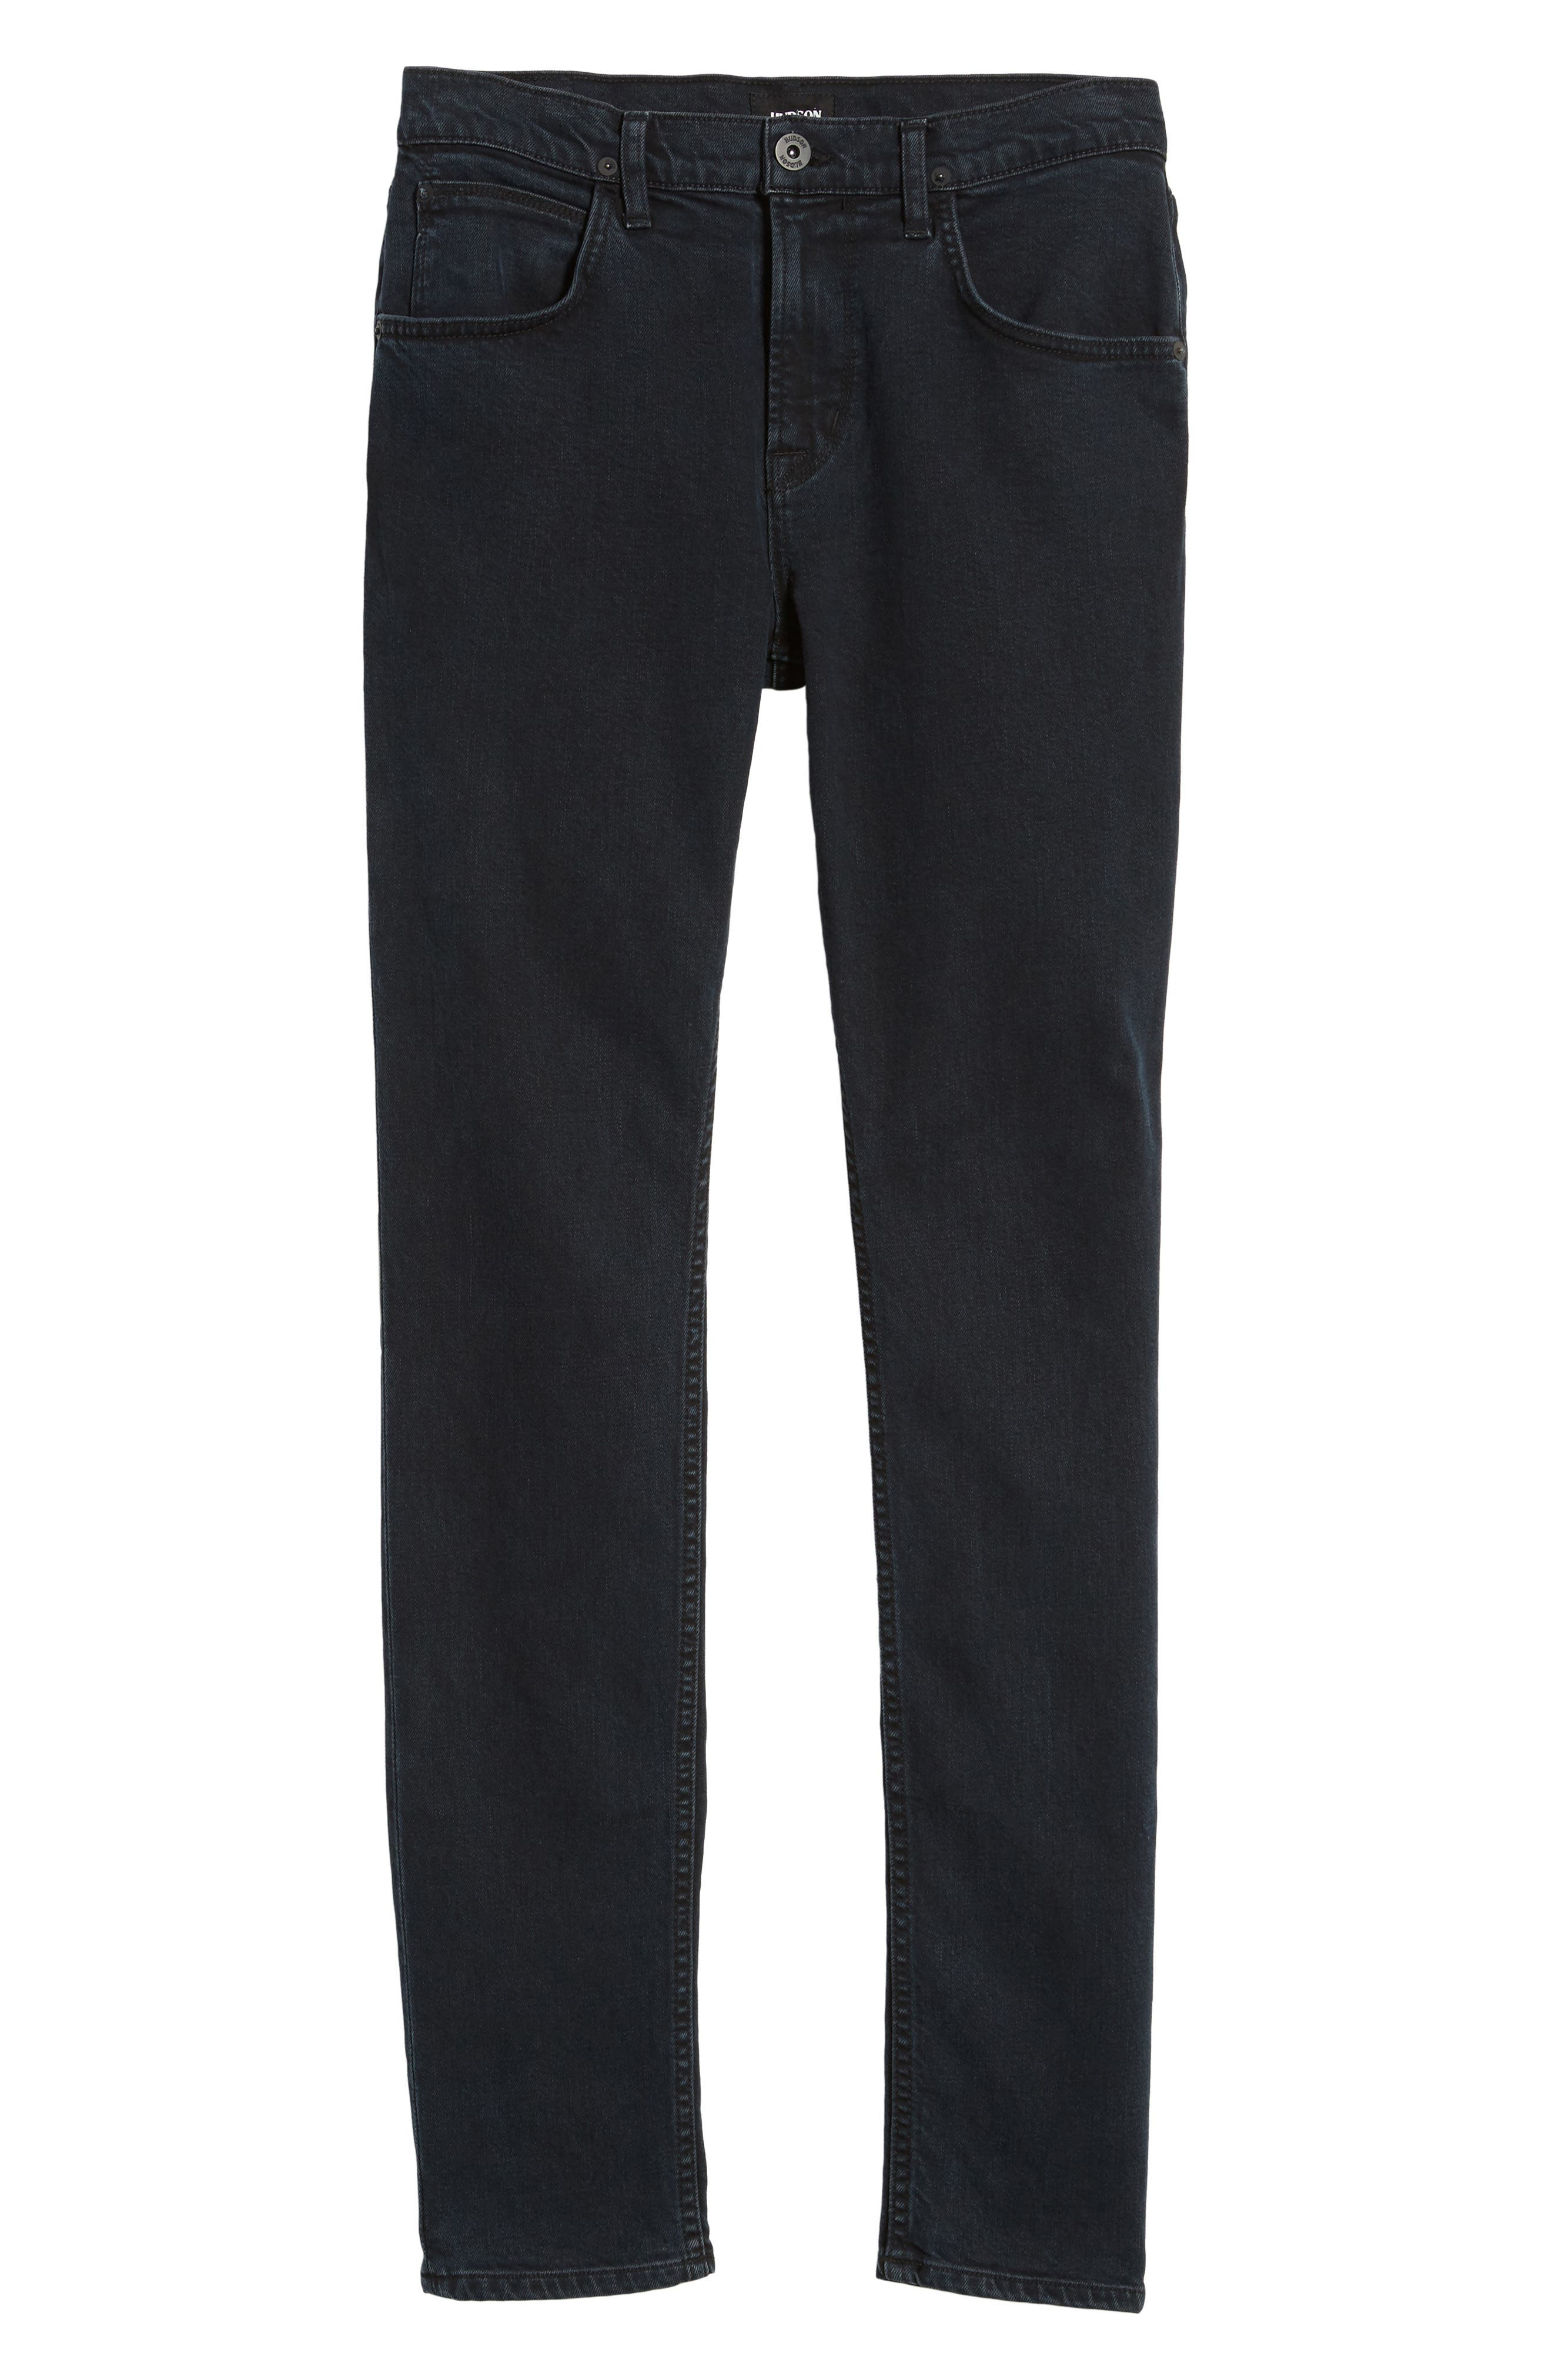 Axl Skinny Fit Jeans,                             Alternate thumbnail 6, color,                             Sight Unseen